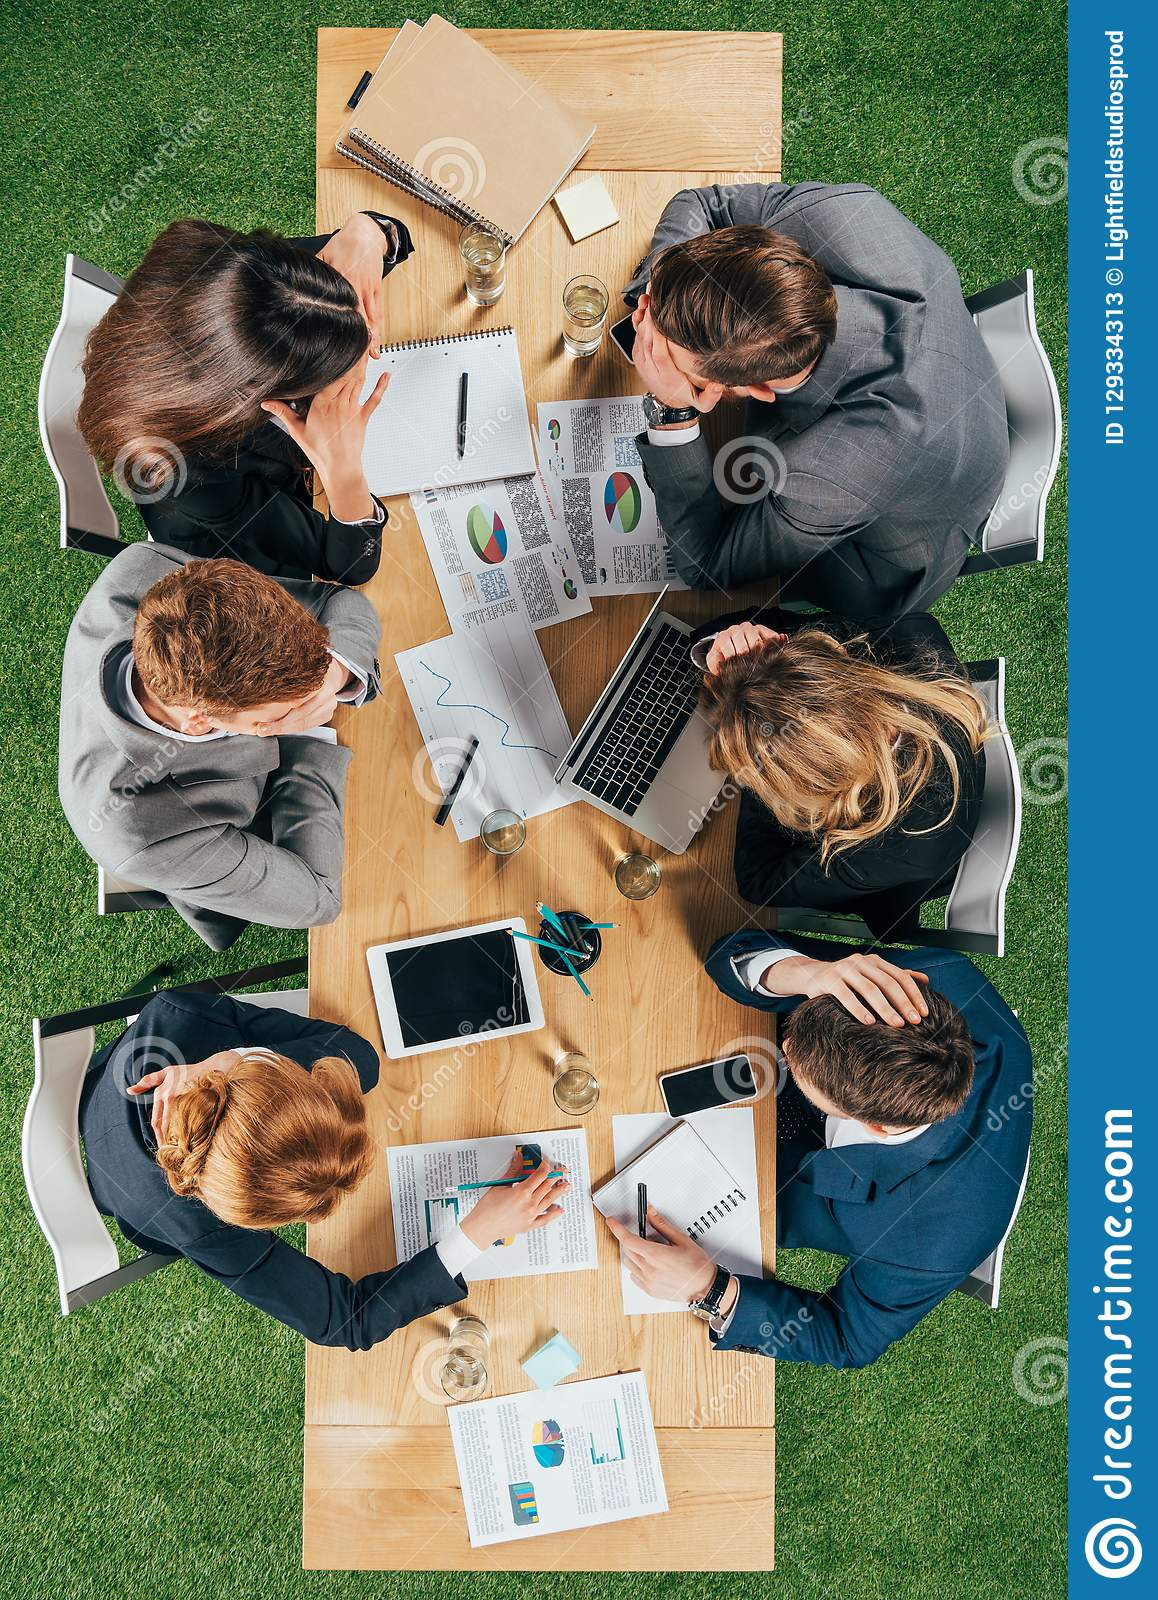 Top view of business partners having discussion at table with documents and devices